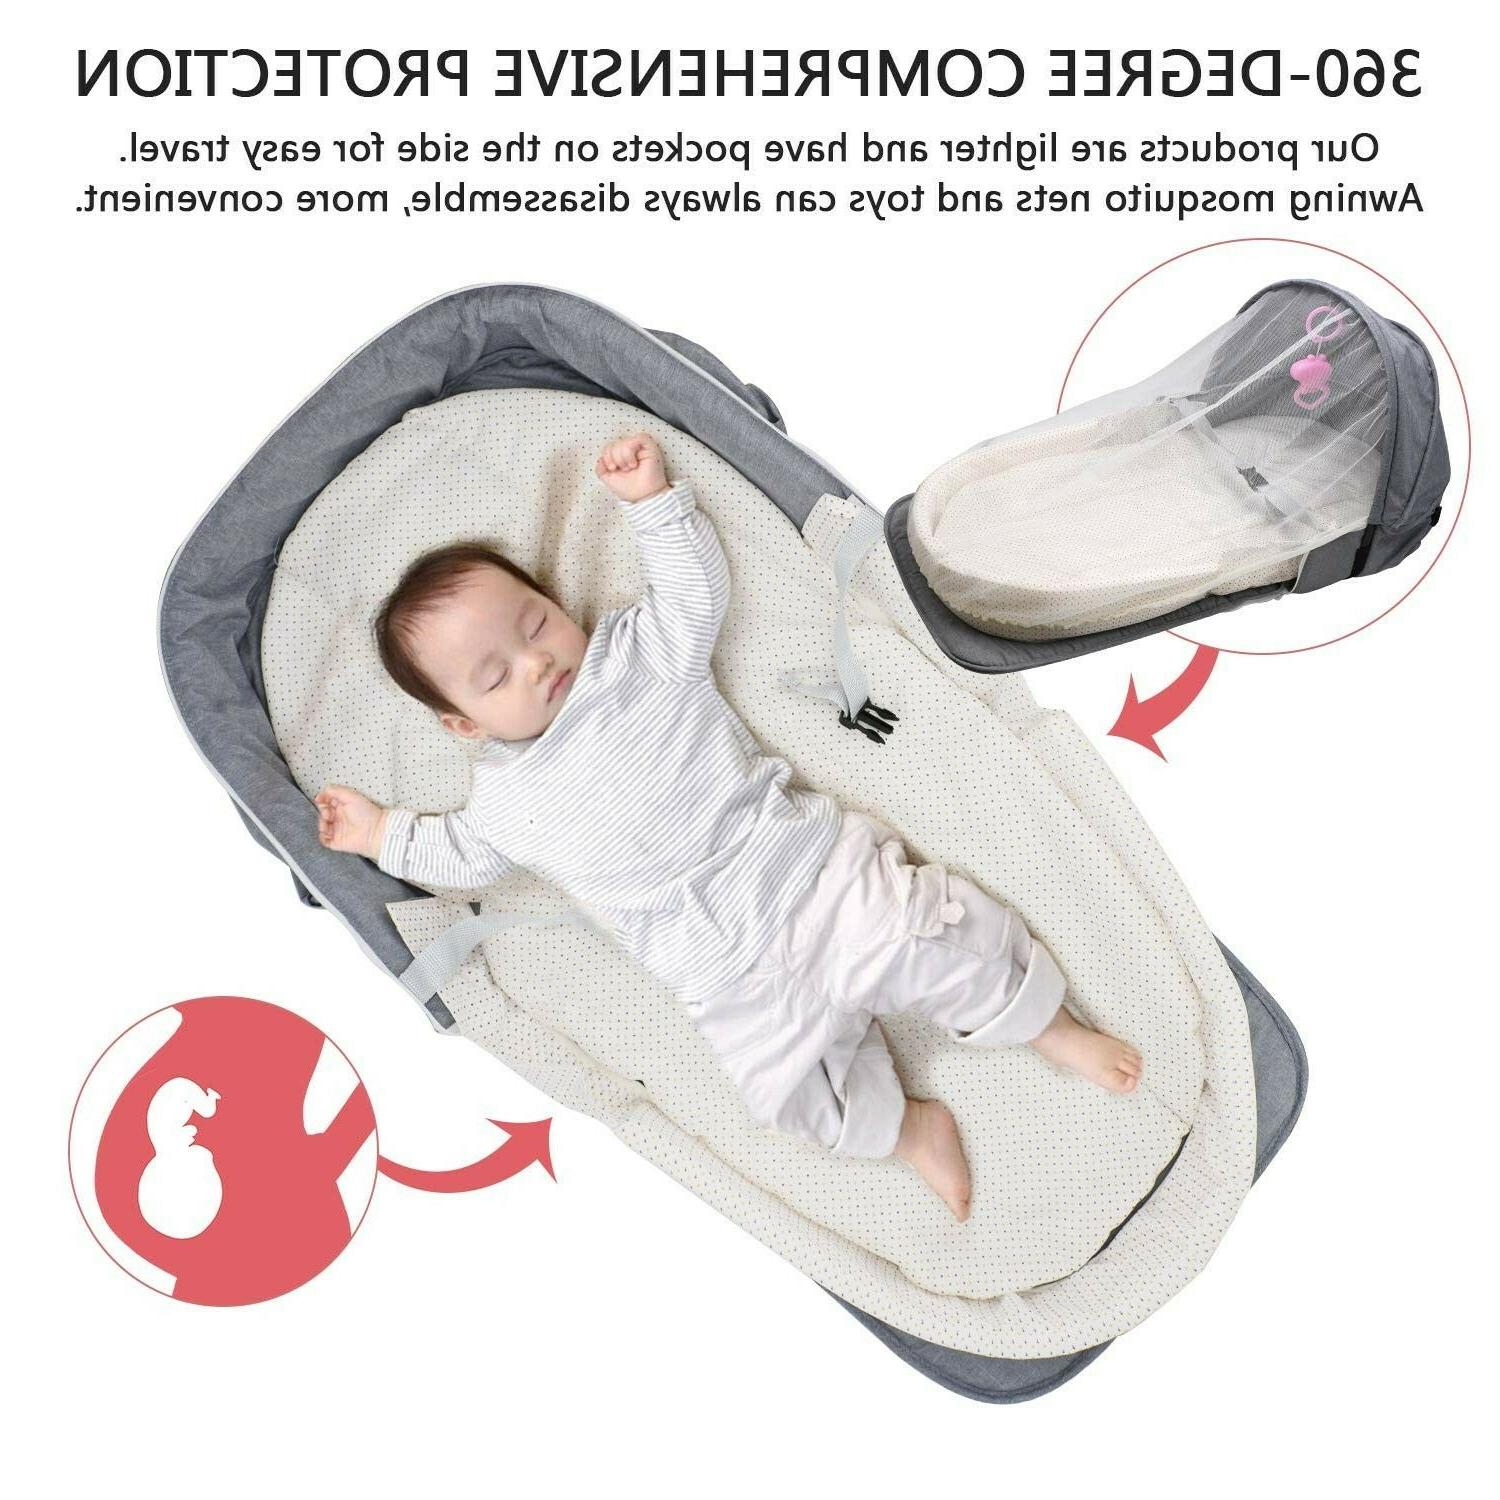 4 Baby Bed Infant Sleeper With Awning & Mosquito Net For Baby